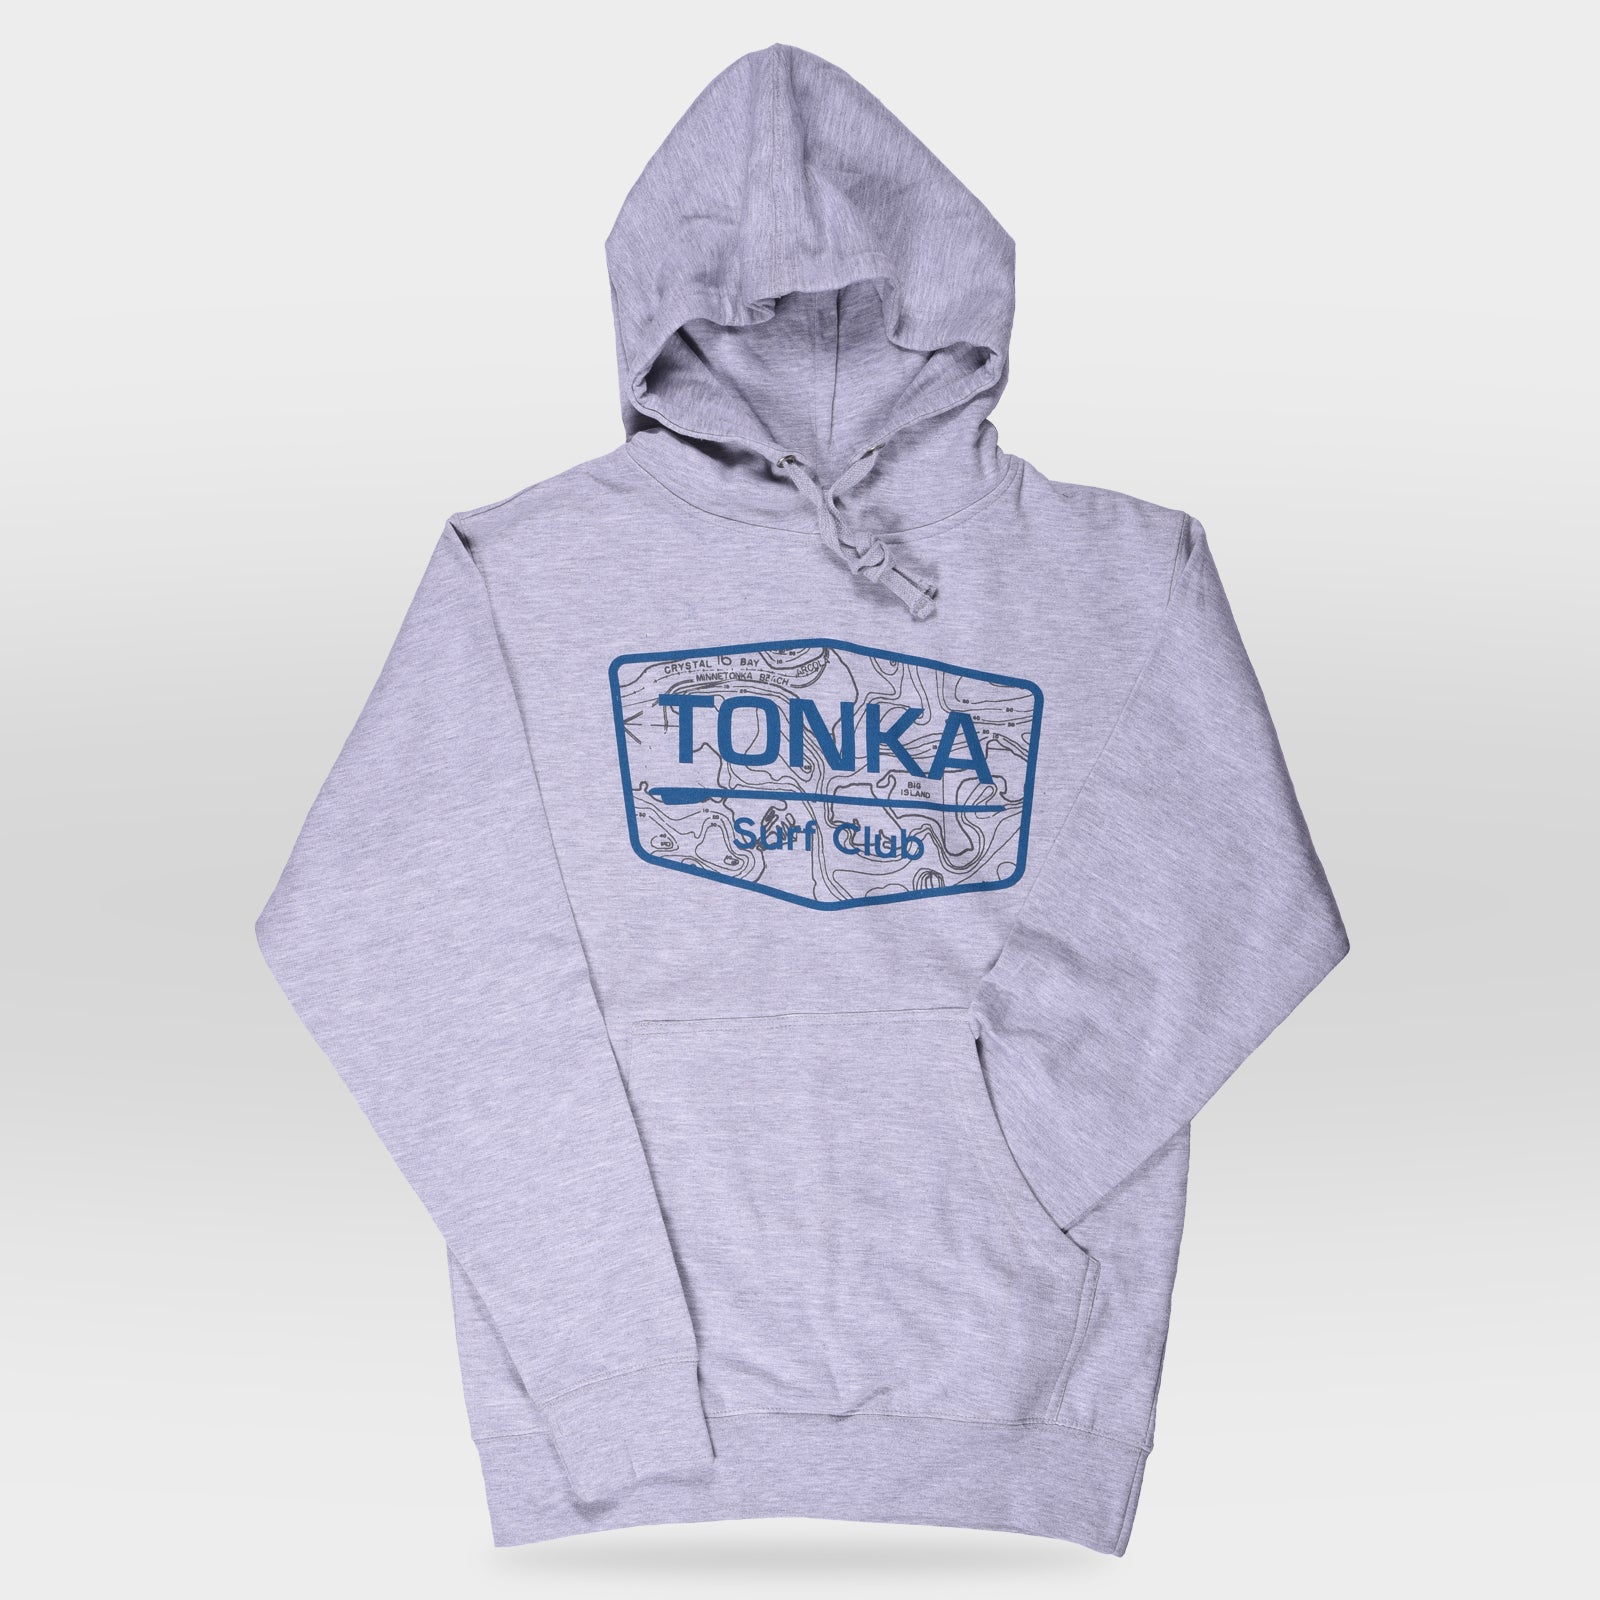 Light gray Light Brown Men's TONKA Surf Club Hoodie Sweatshirt